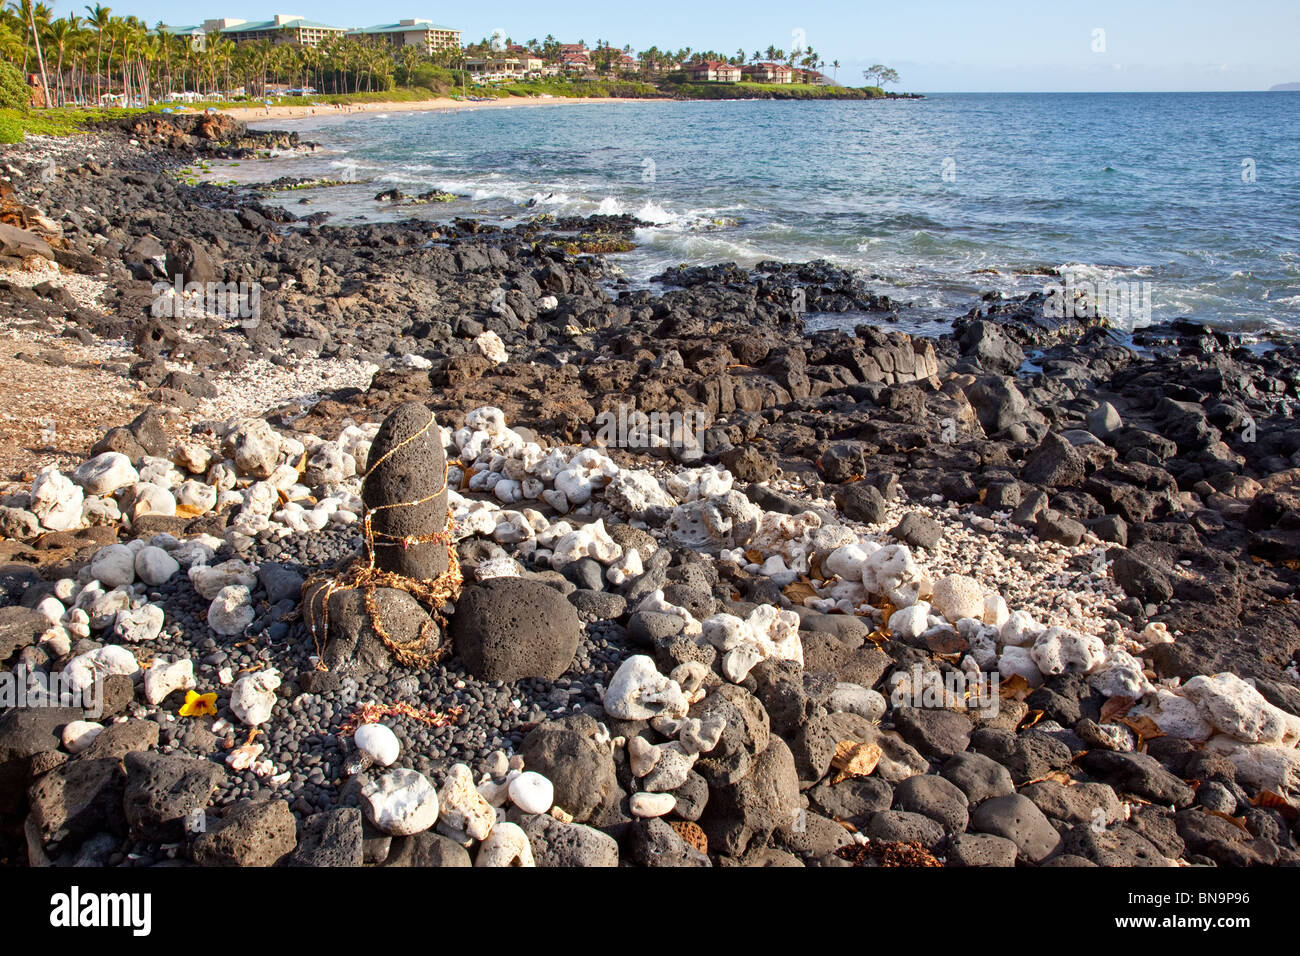 Ku'ula Stone or Fisherman's Shrine on Wailea Beach in Wailea, Maui, Hawaii - Stock Image